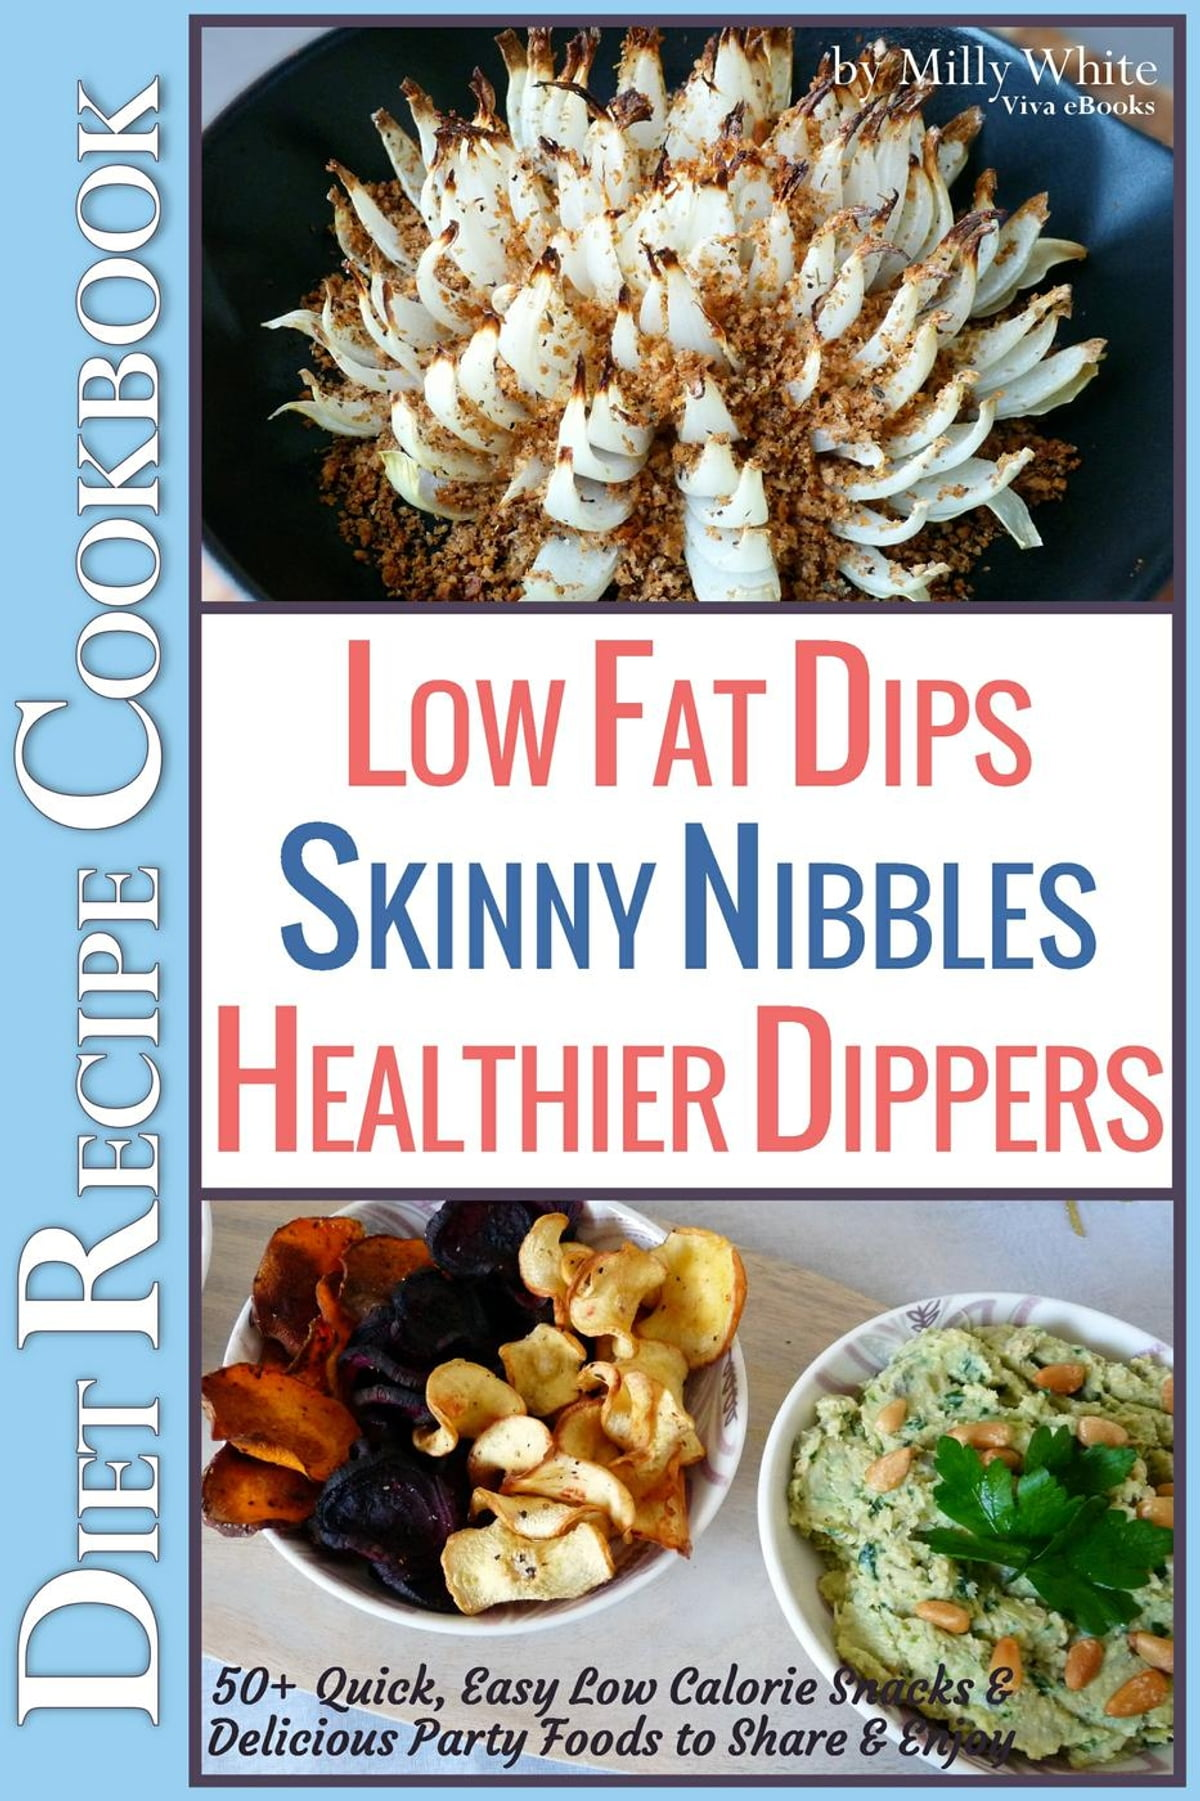 Low Fat Dips Skinny Nibbles Healthier Dippers 50 Diet Recipe Cookbook Quick Easy Low Calorie Snacks Delicious Party Foods To Share Enjoy Ebook By Milly White Rakuten Kobo